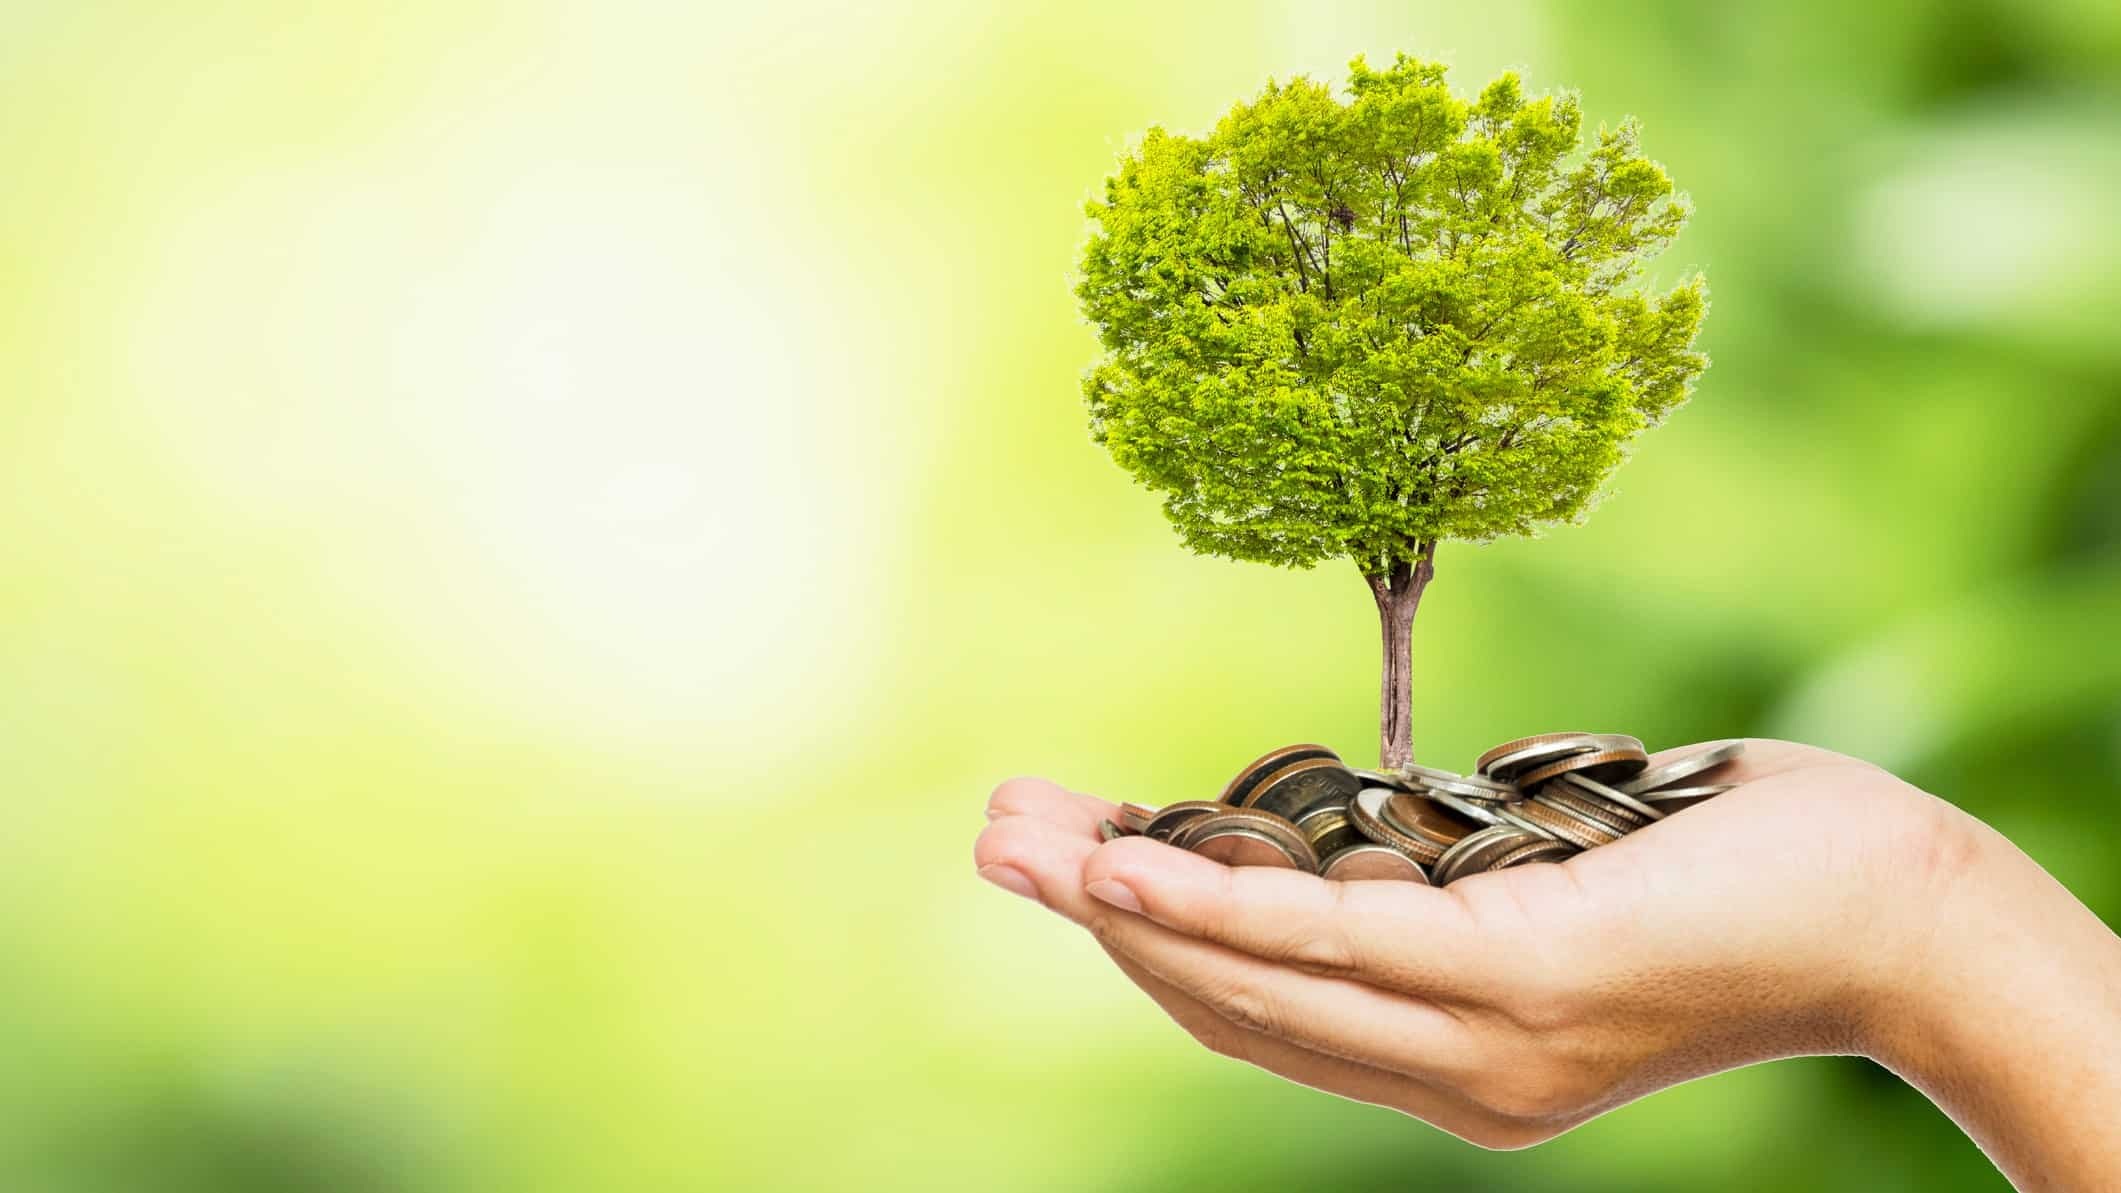 hand holding miniature tree on top of pile of coins signifying growing investment or magellan share price